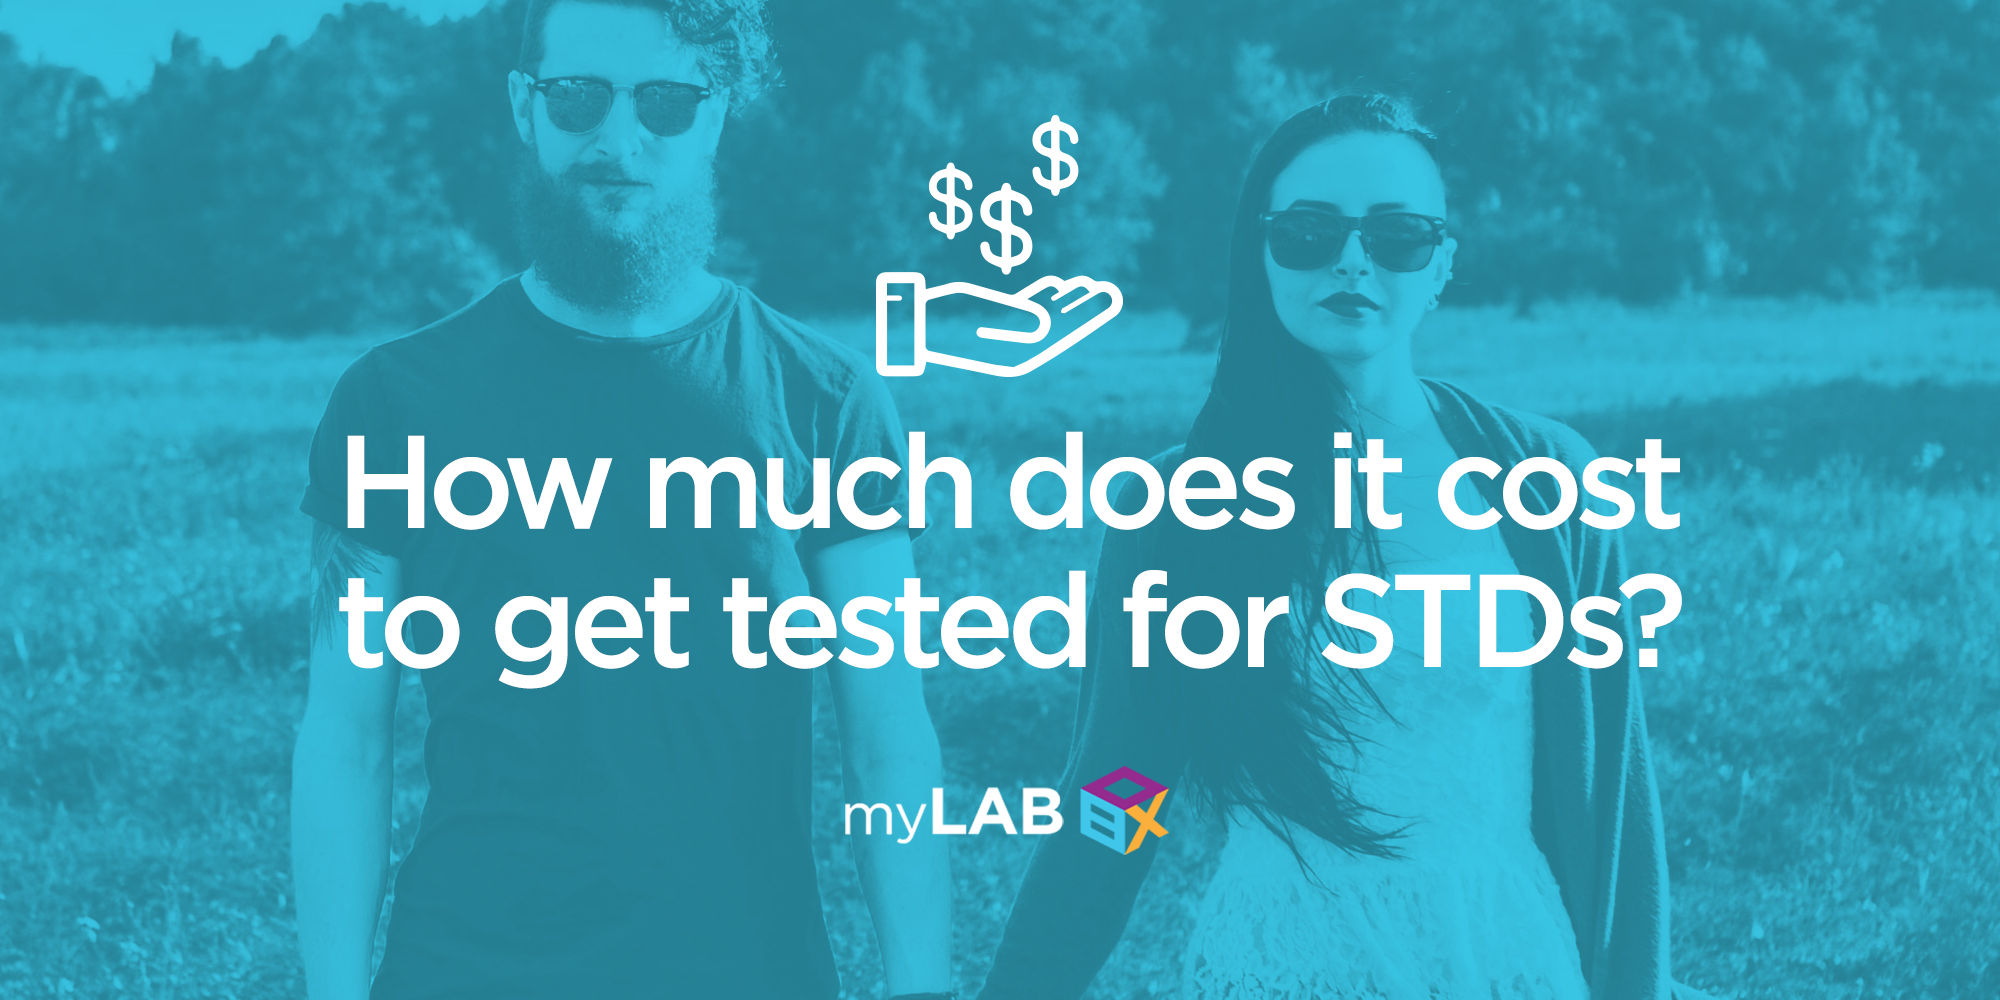 How much does it cost to get tested for STDs